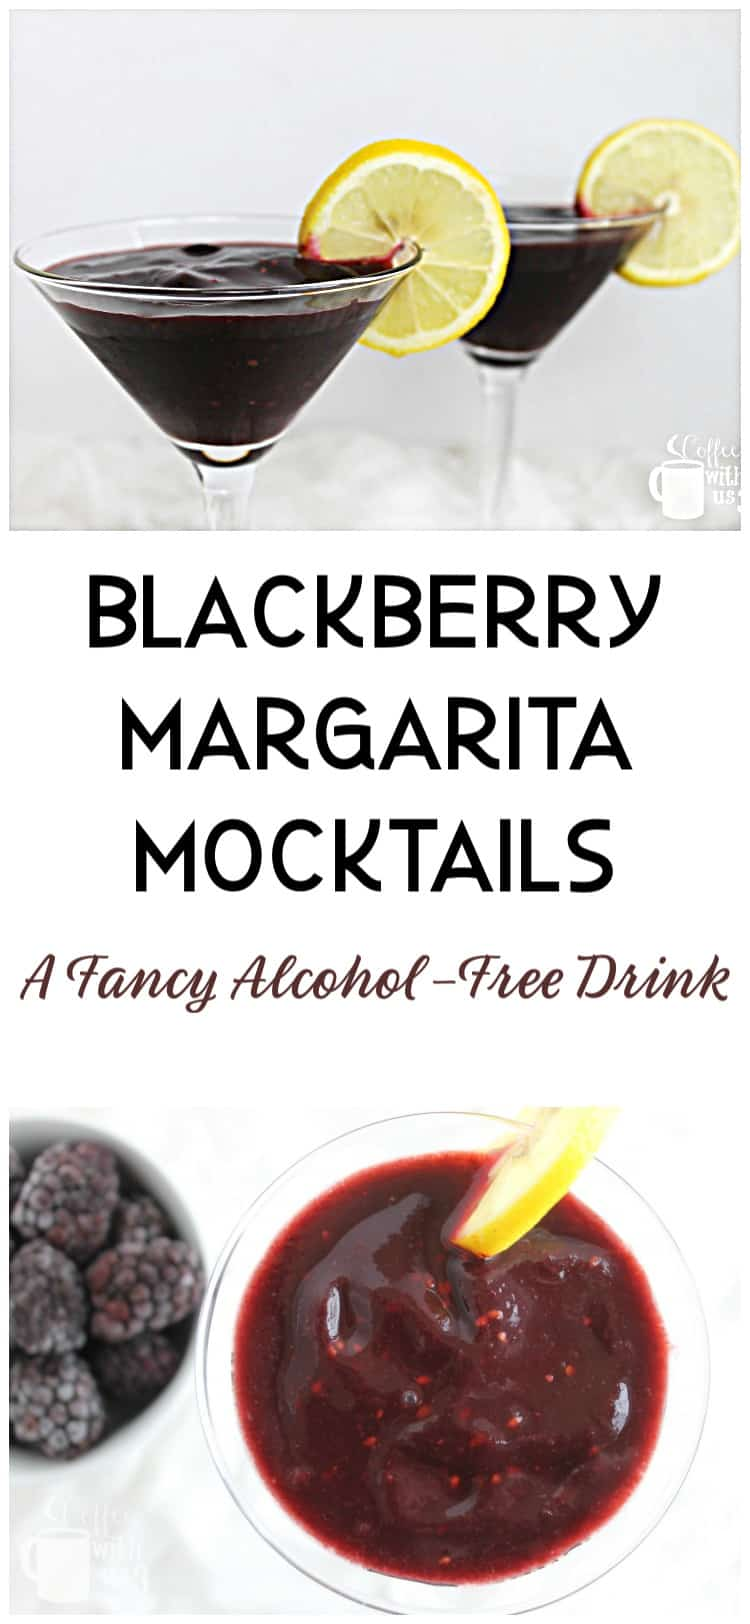 These Blackberry Margarita Mocktails are a sweet frozen, blended mocktail, made with real blackberries. A family-friendly, alcohol-free fancy drink option.